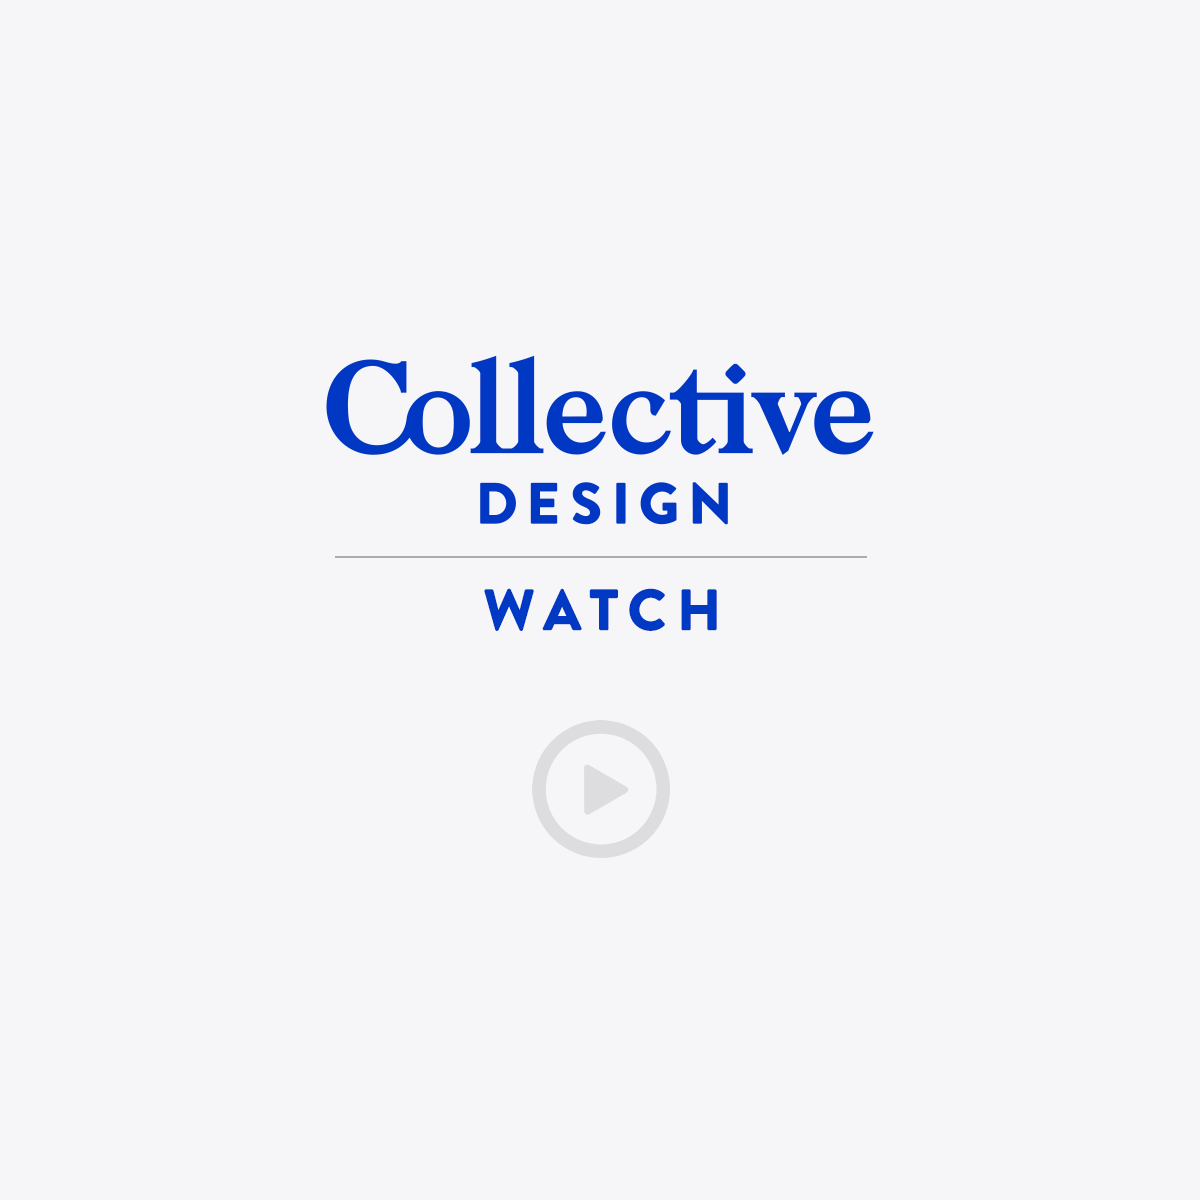 Collective Design - Watch